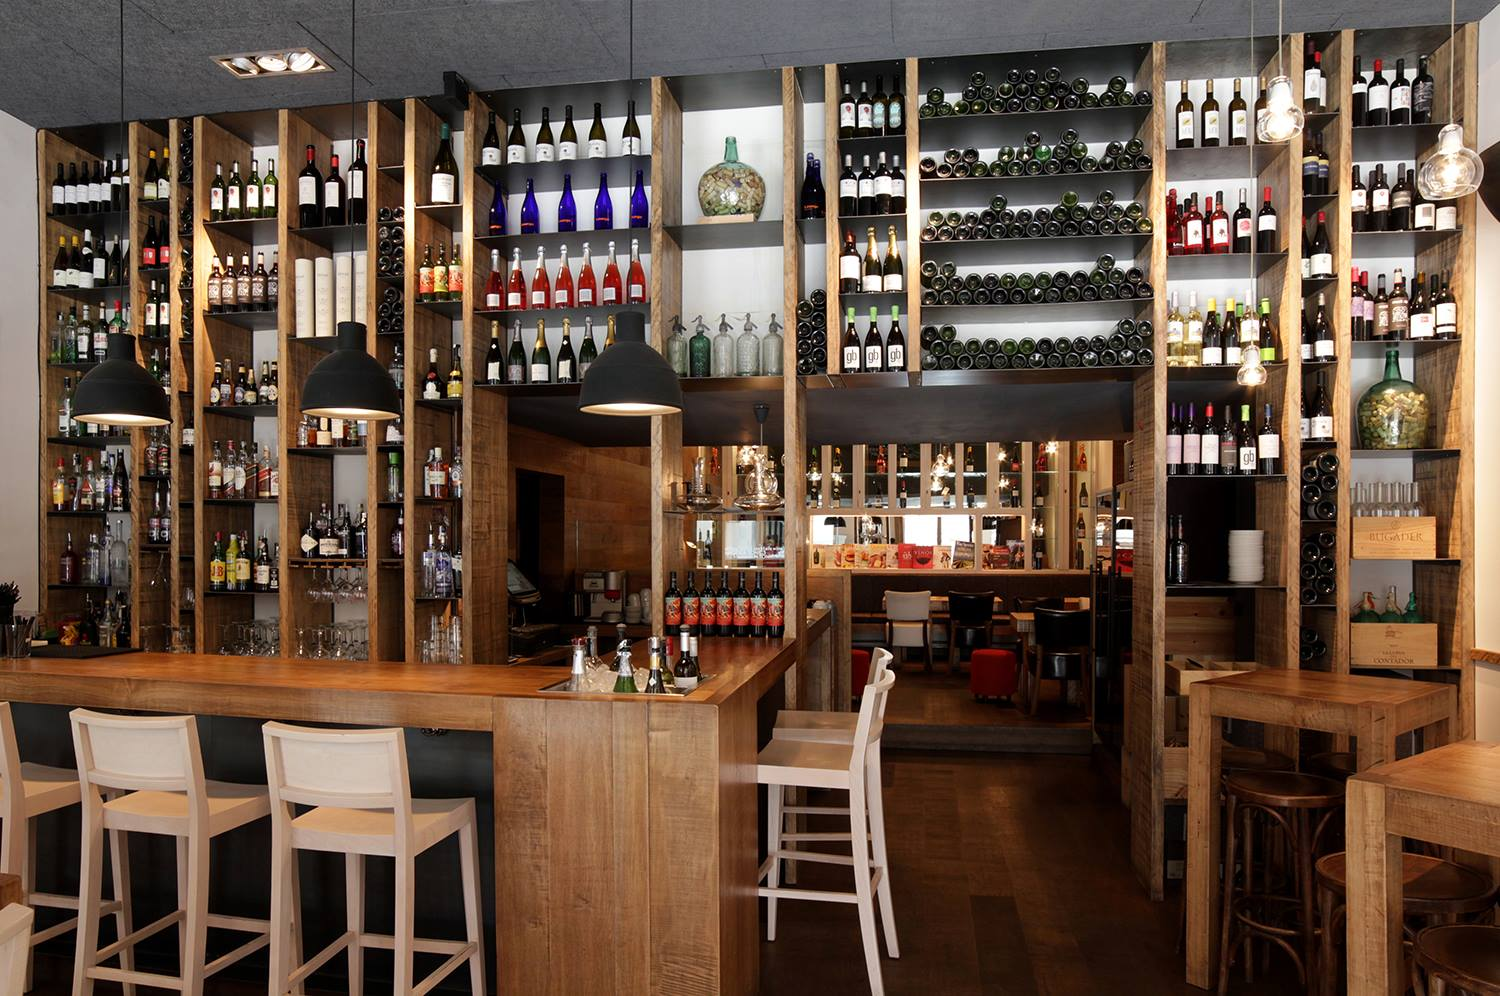 El Diset wine bar